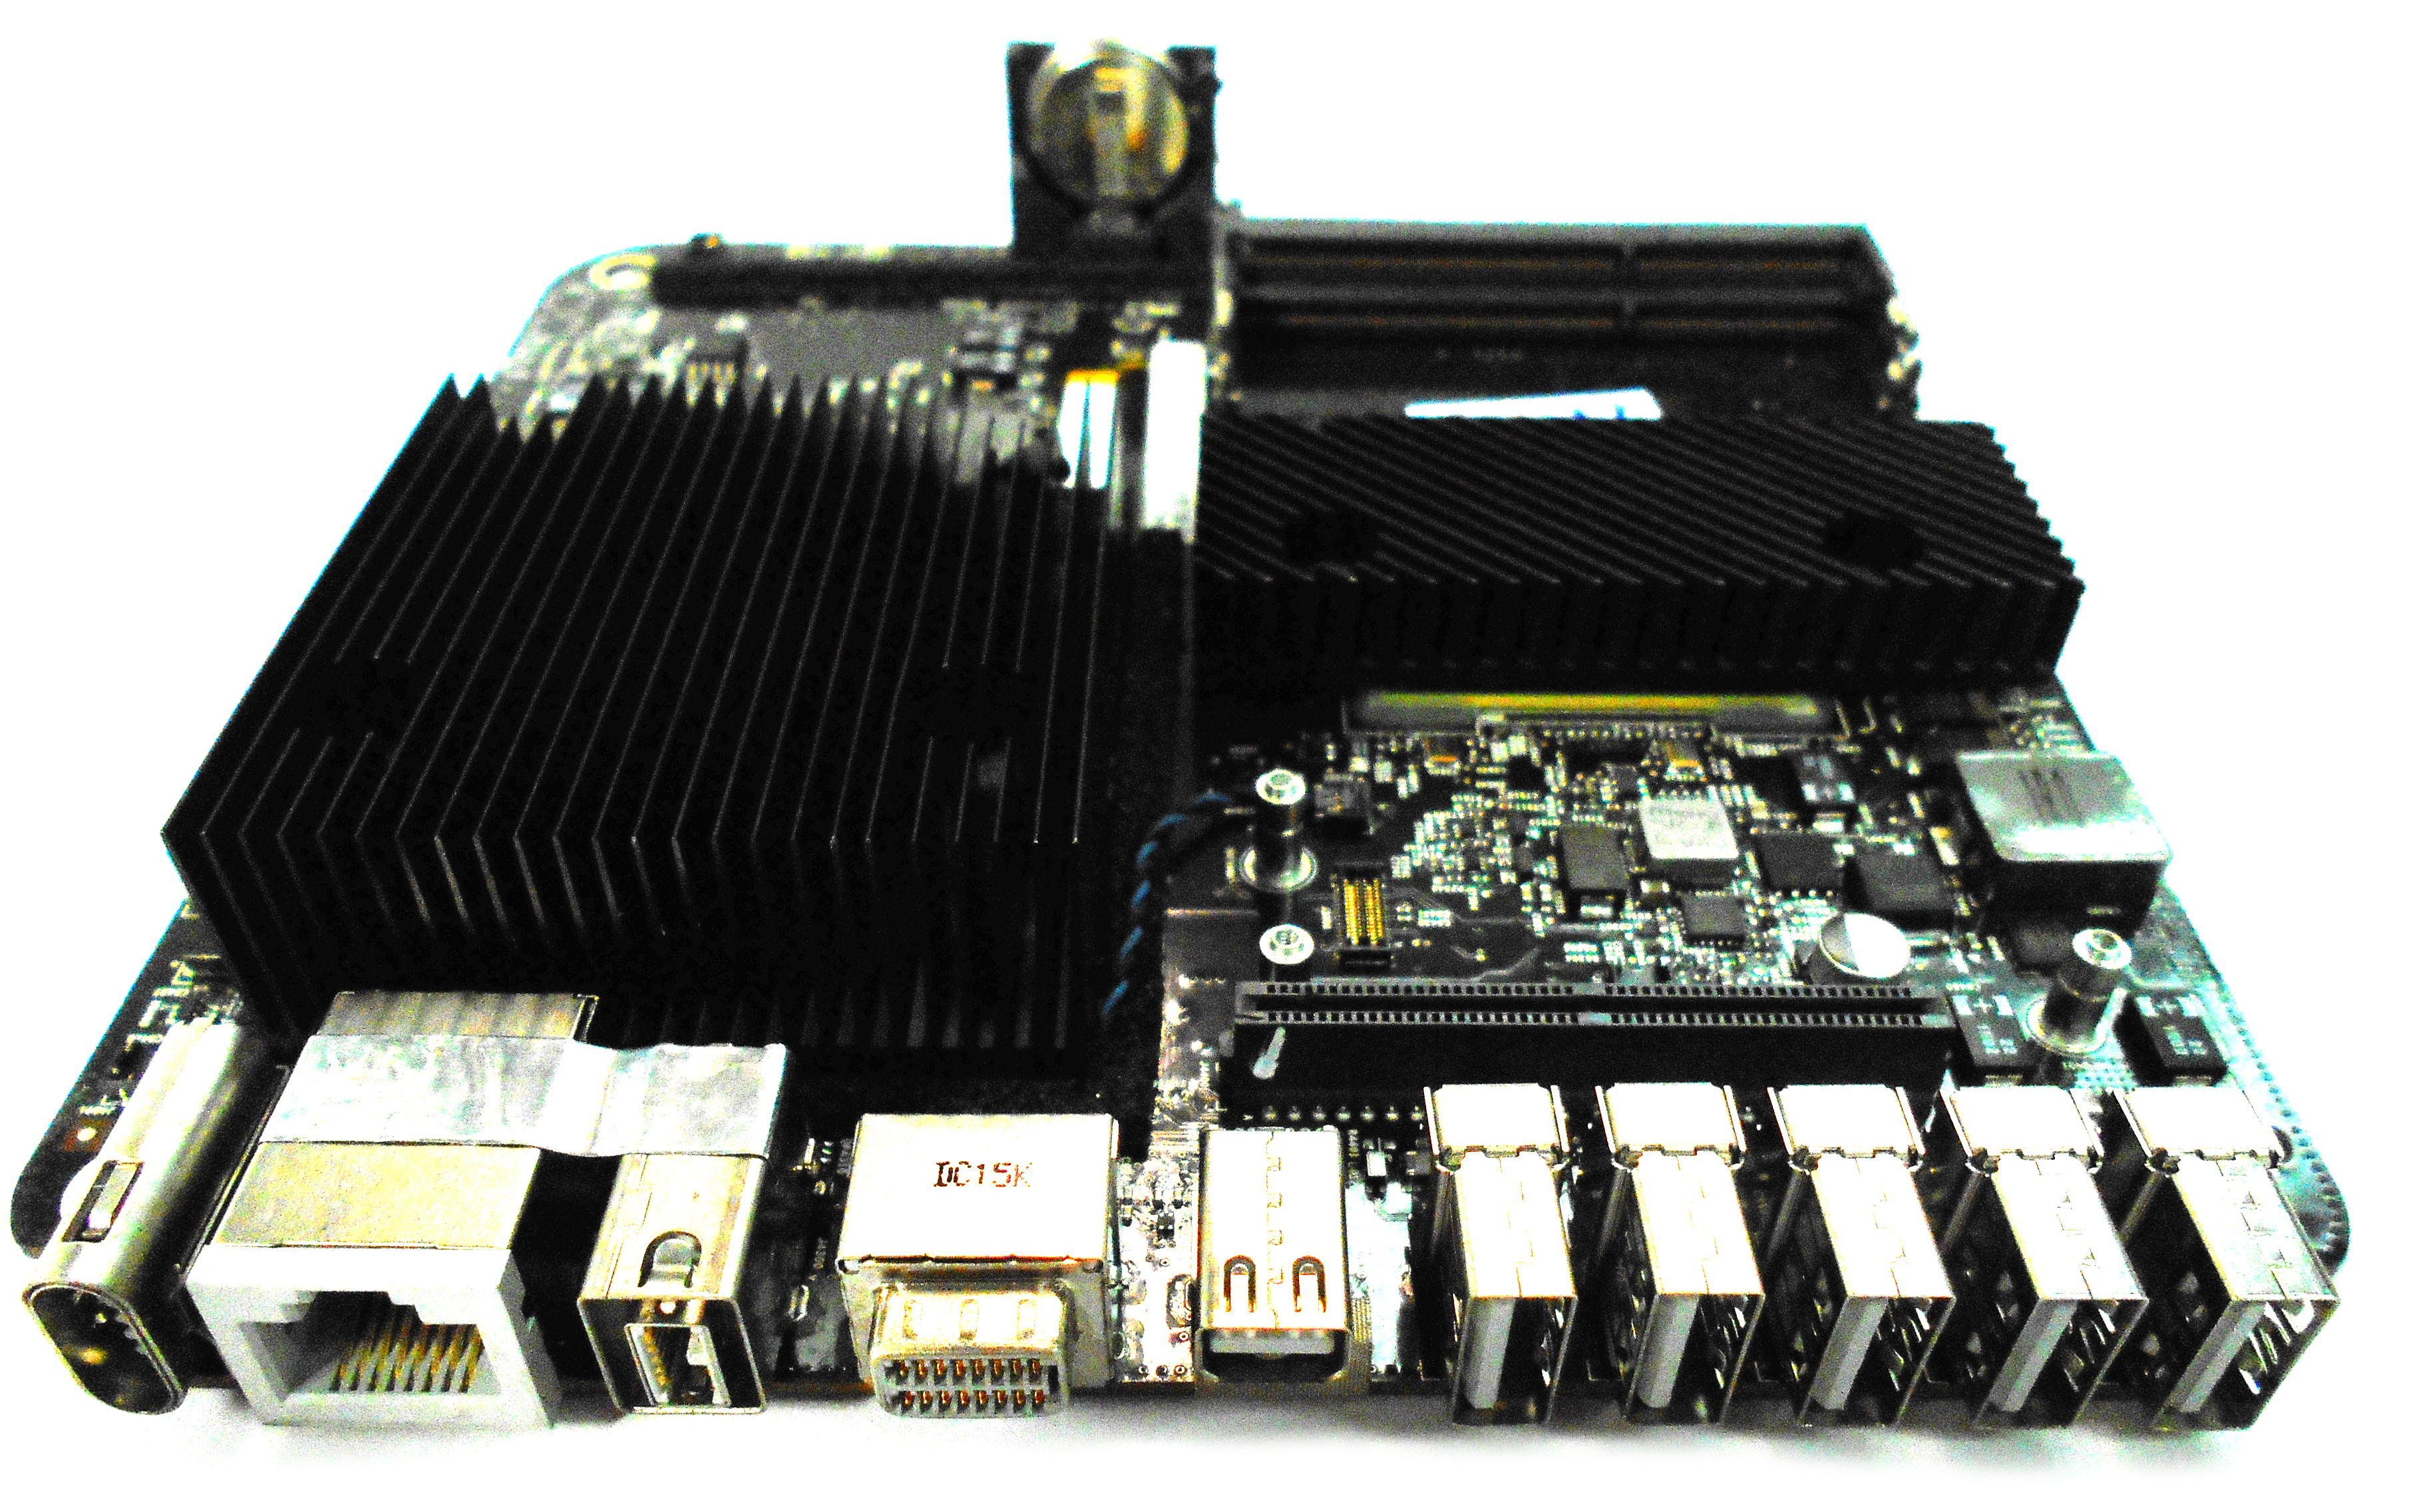 639-0188 EEE:A04 Apple 2.53GHz Logic Board /f Mac Mini A1283 EMC:2336 Late2009